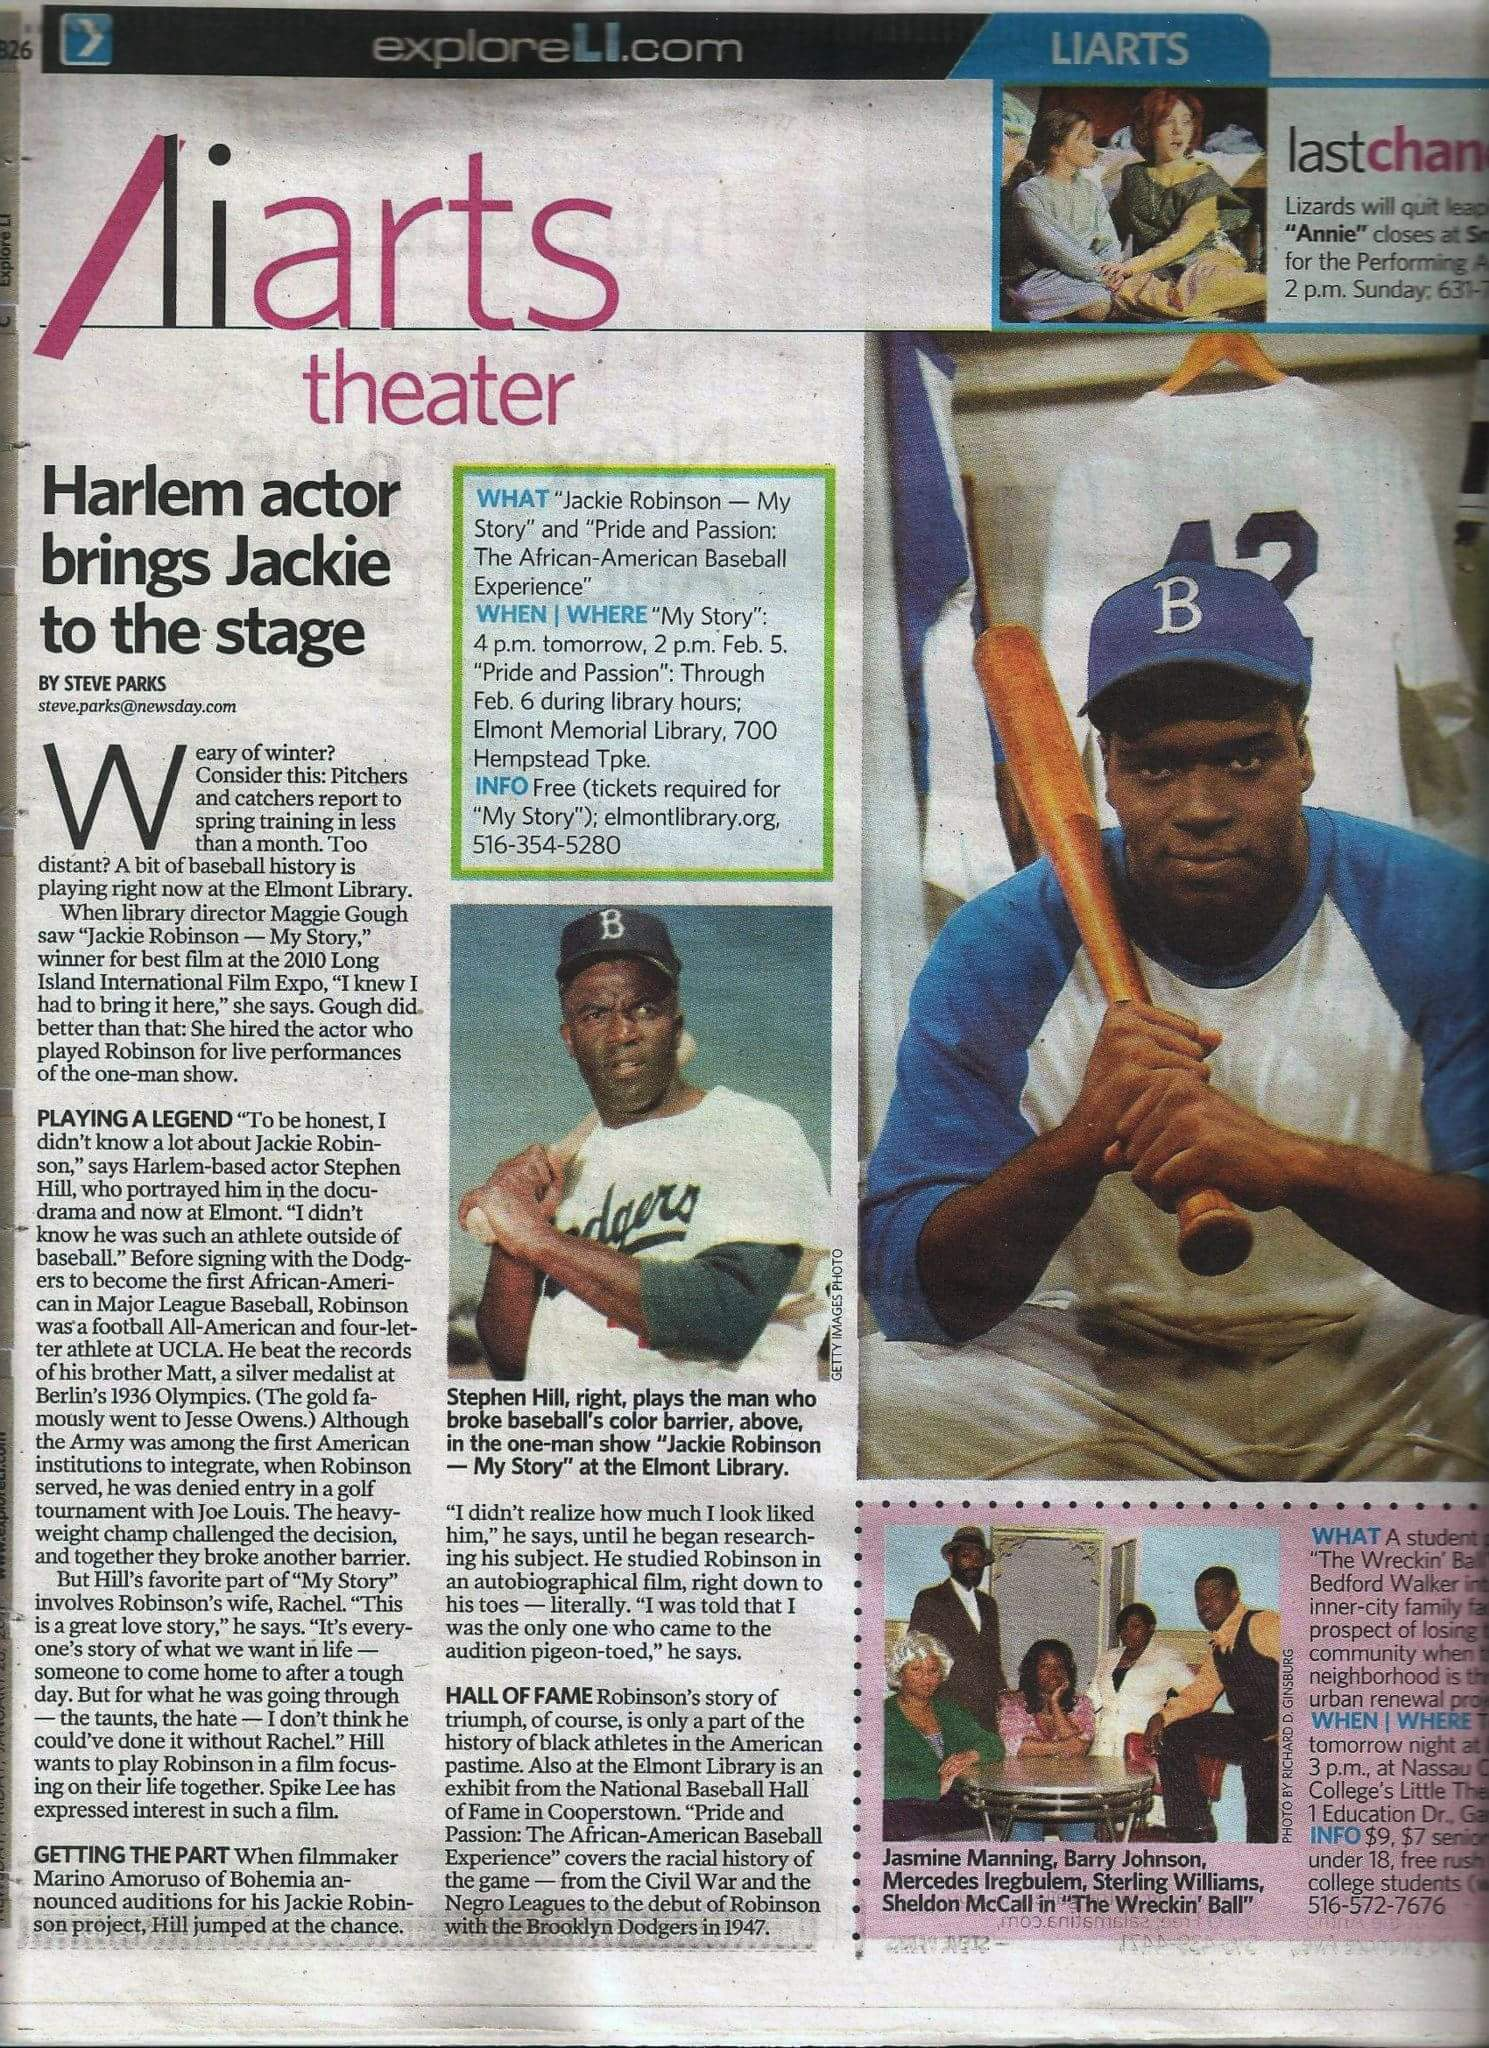 As Jackie Robinson on stage/screen